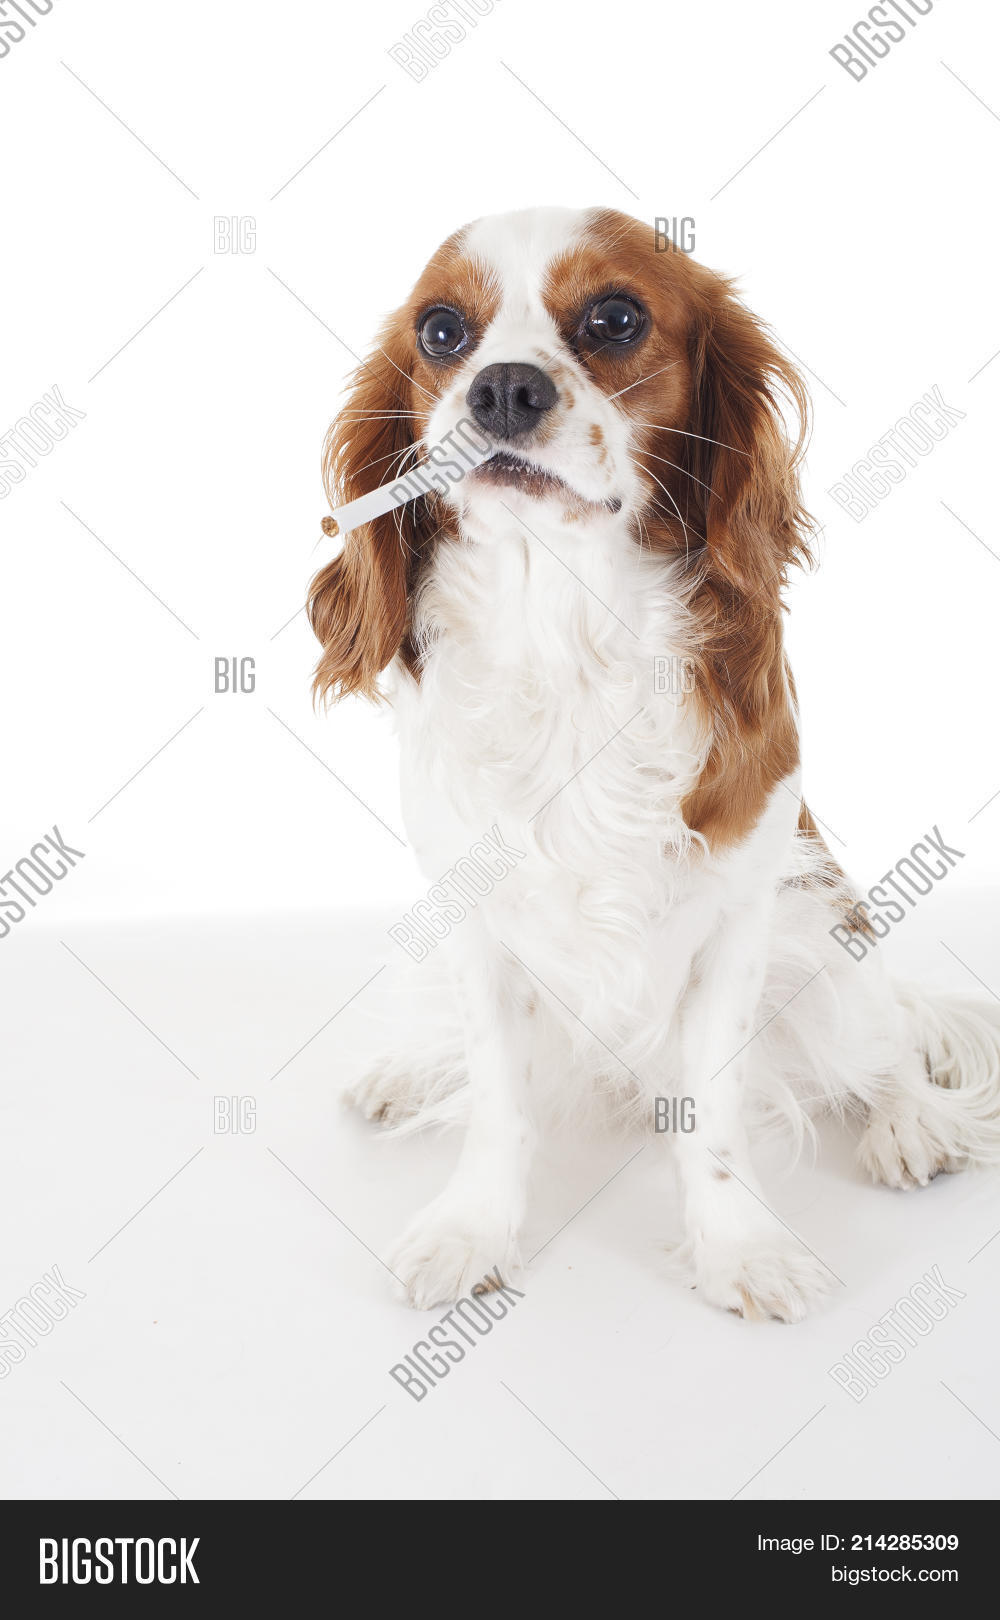 Cool King Charles Canine Adorable Dog - 214285309  You Should Have_43784  .jpg